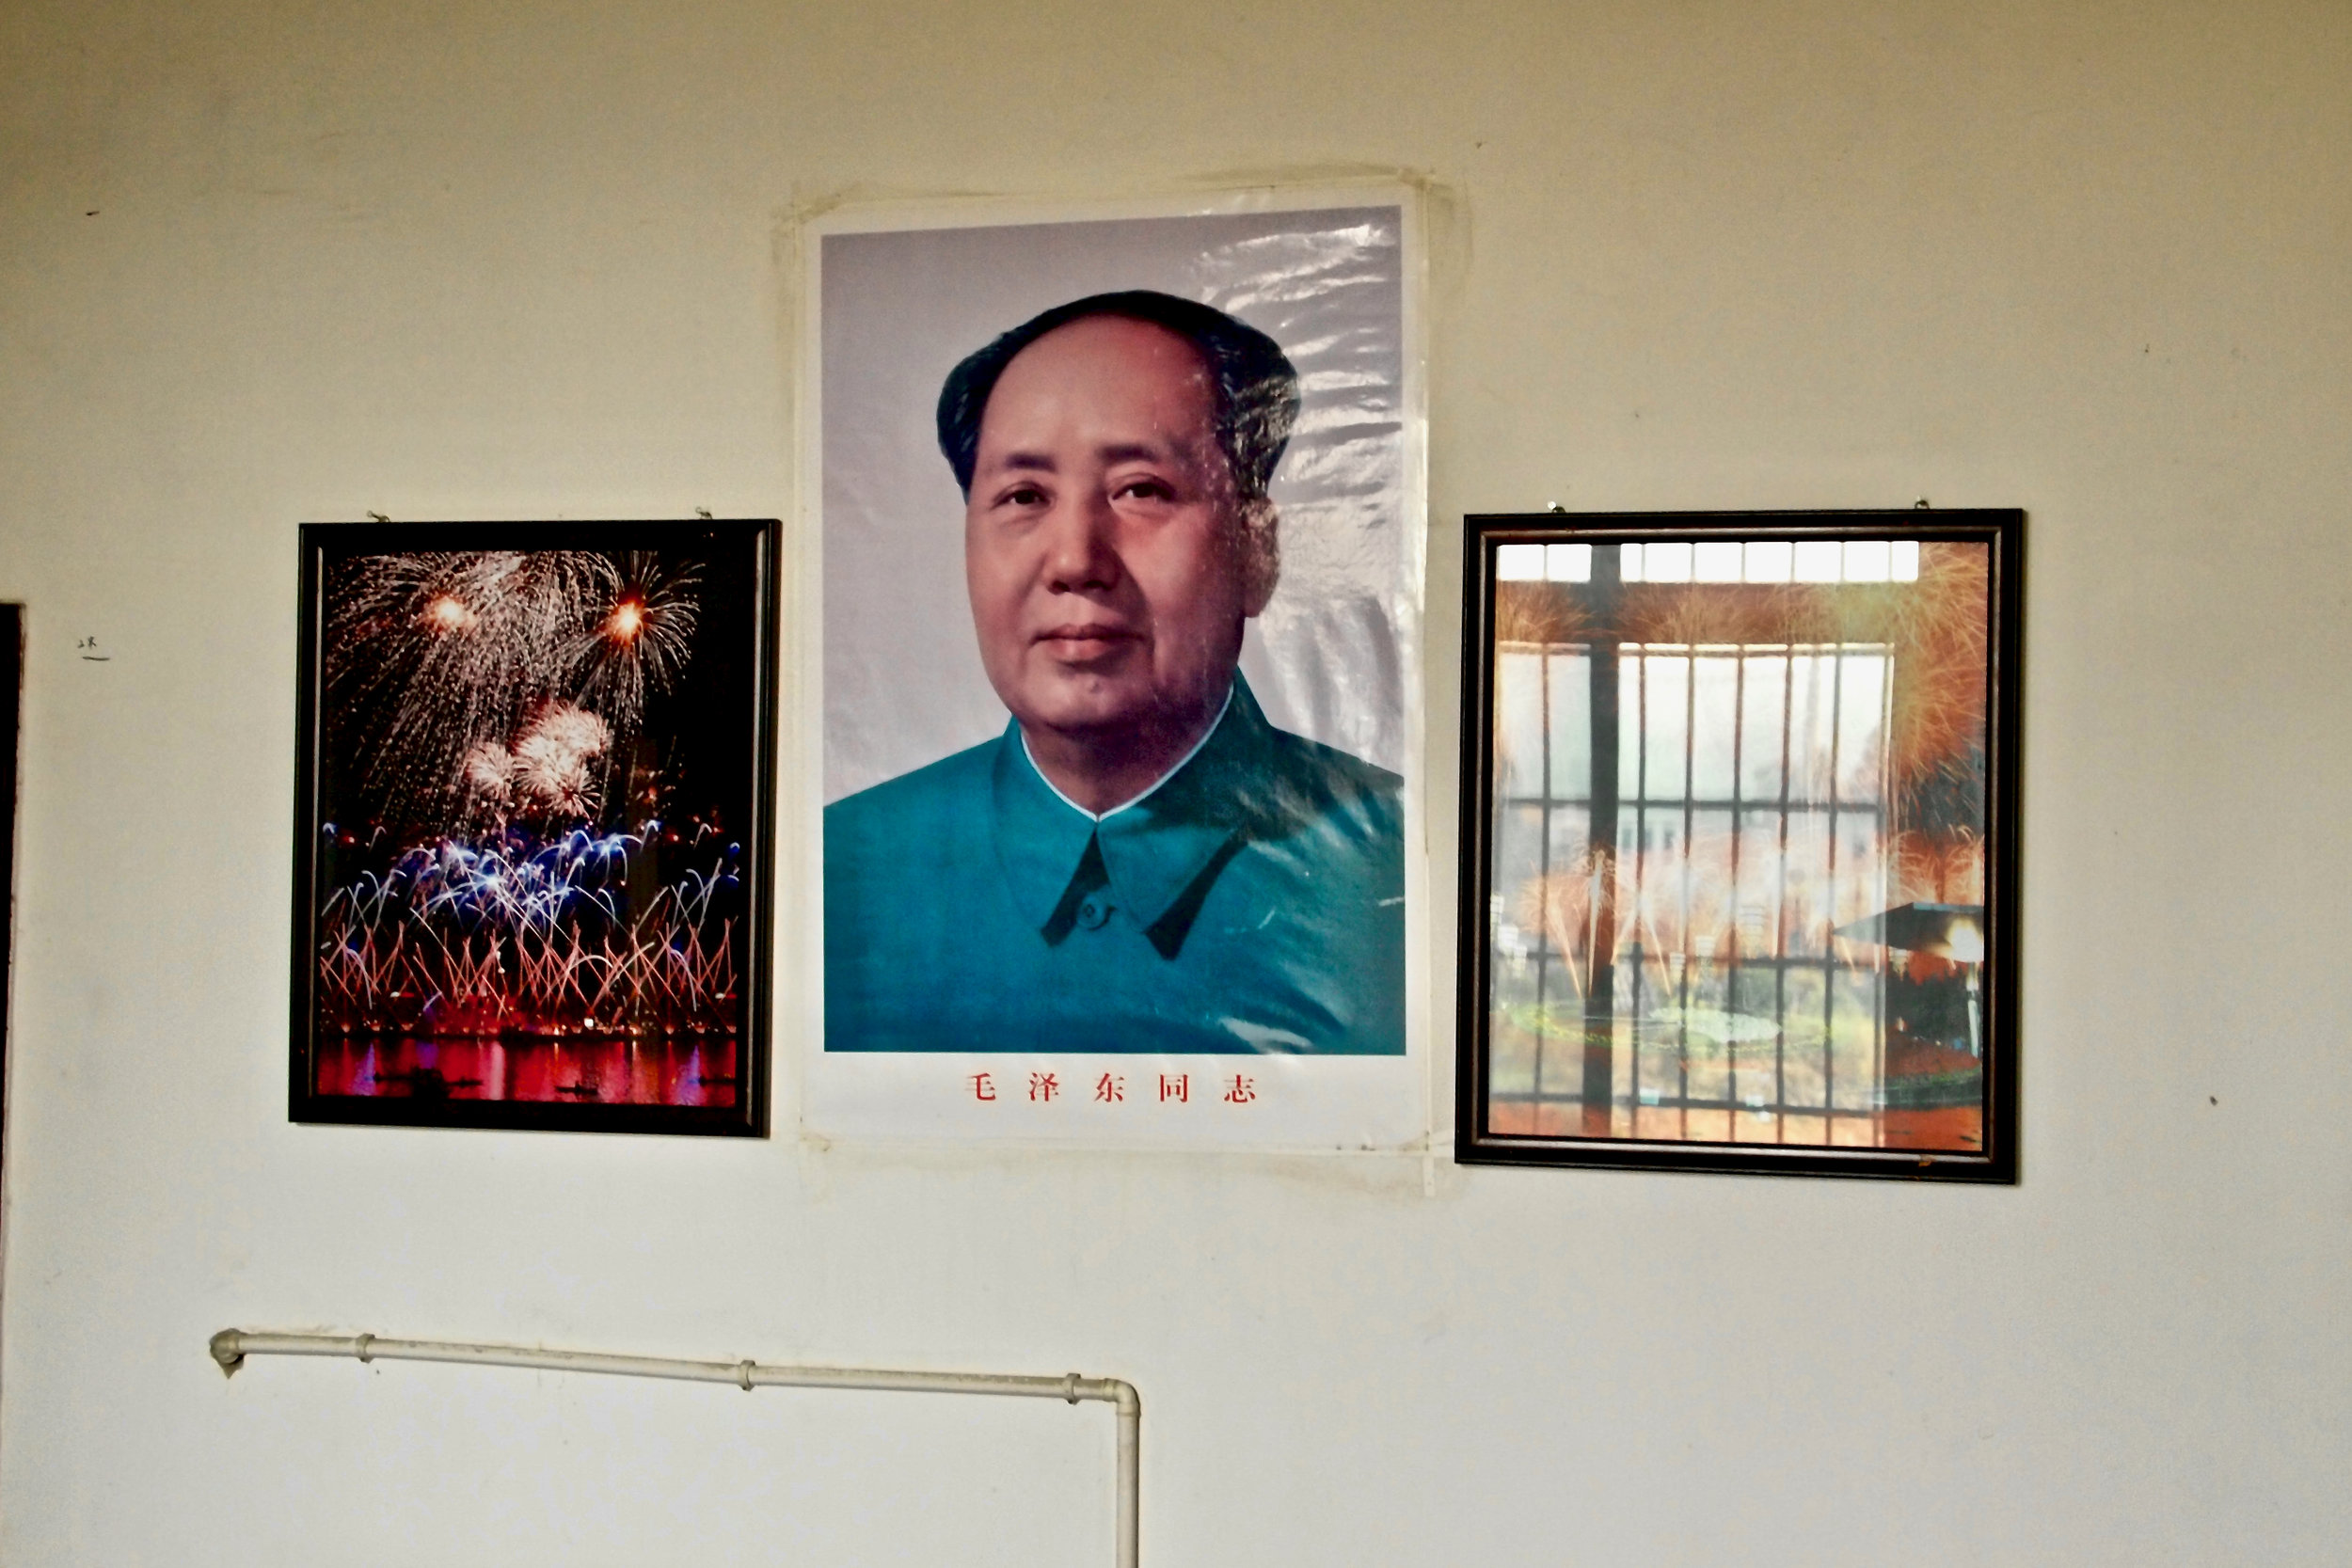 Mao Zedong and Fireworks: what's important in Liuyang, China. Photo: (C) Remko Tanis